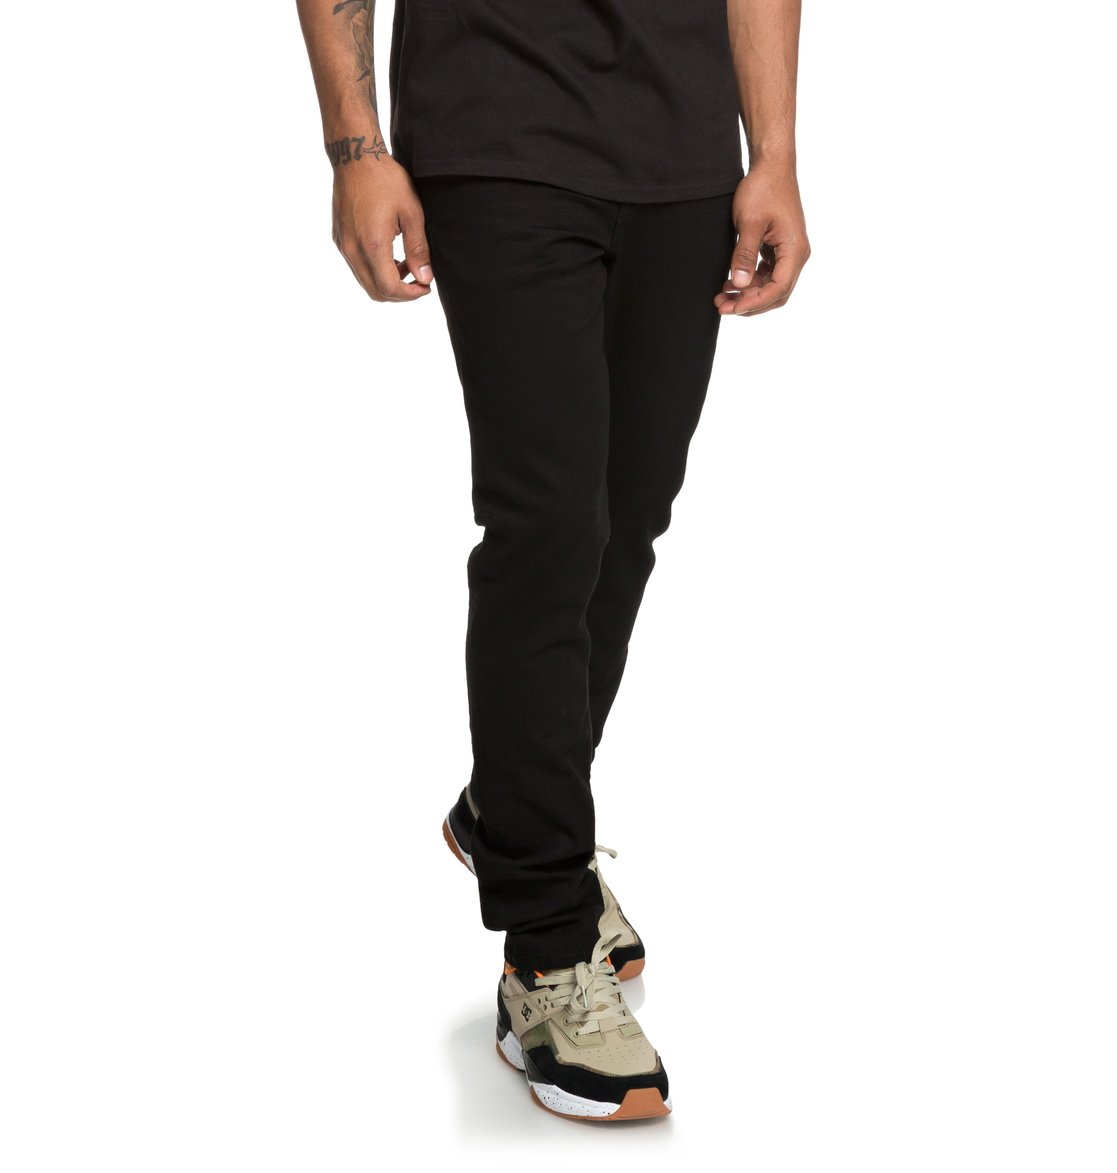 Image is loading DC-Shoes-Worker-Black-Slim-Fit-Jeans-for- ae9747d4f6